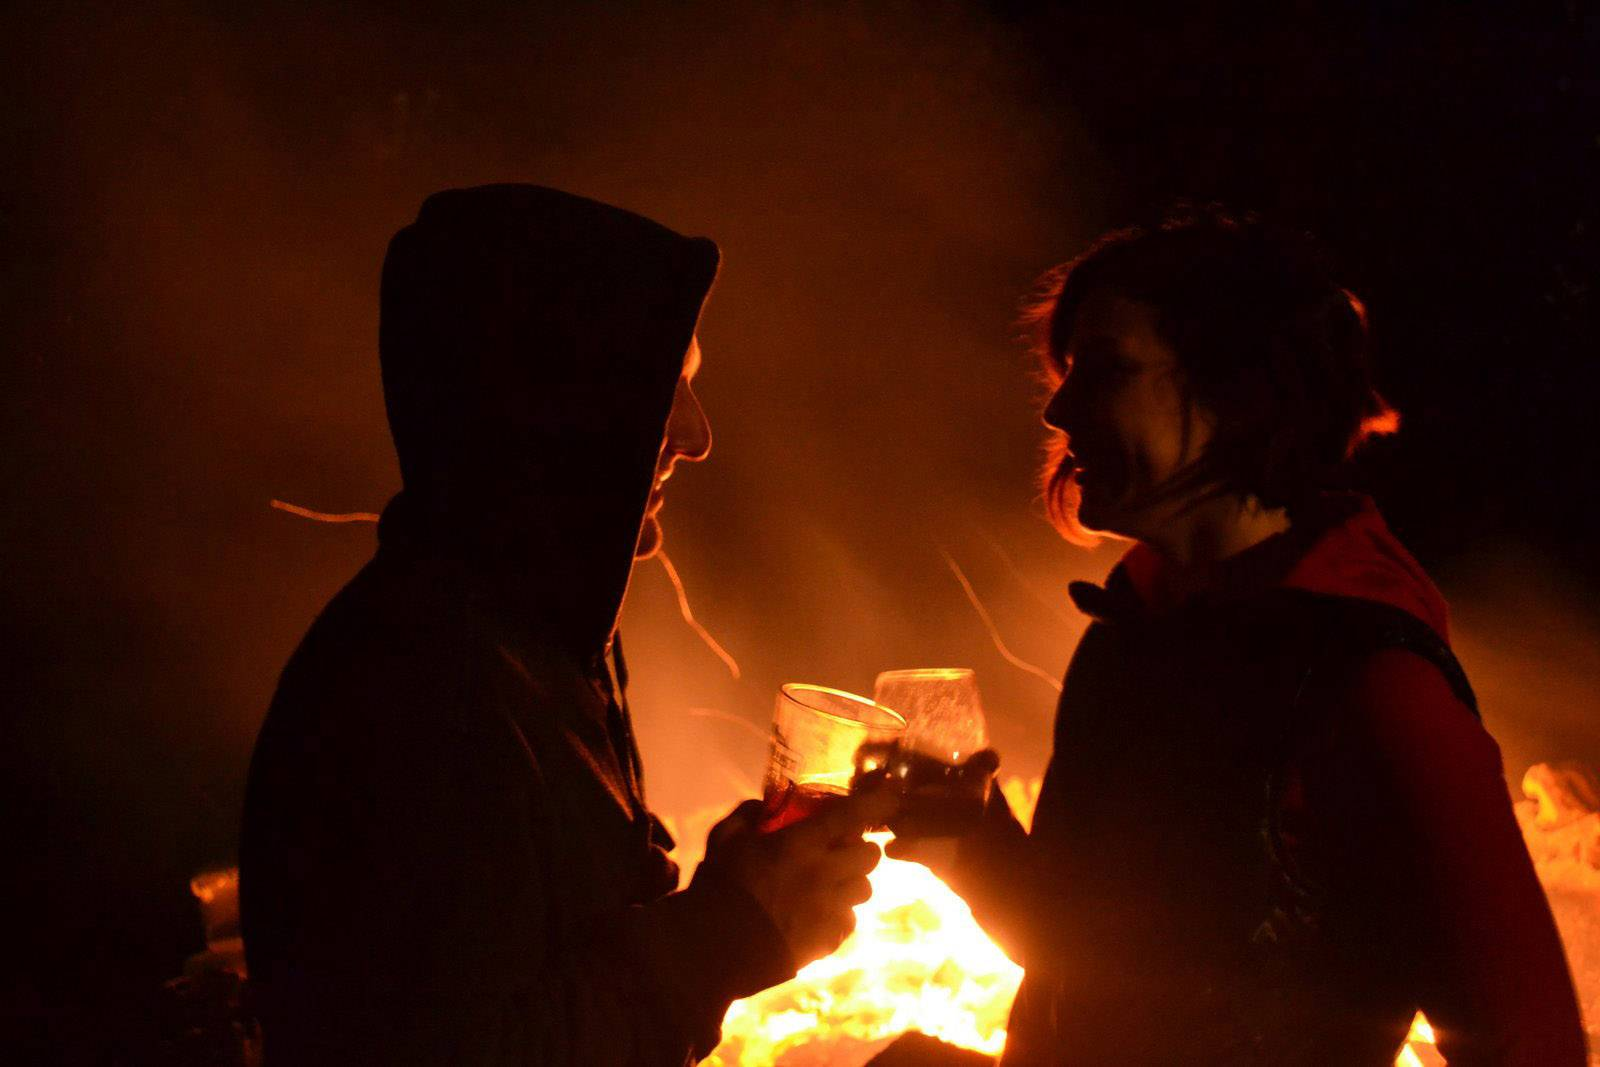 Krista Hook and Ron Heslop enjoy the warmth of a bonfire in Lake Villa on Oct. 4.